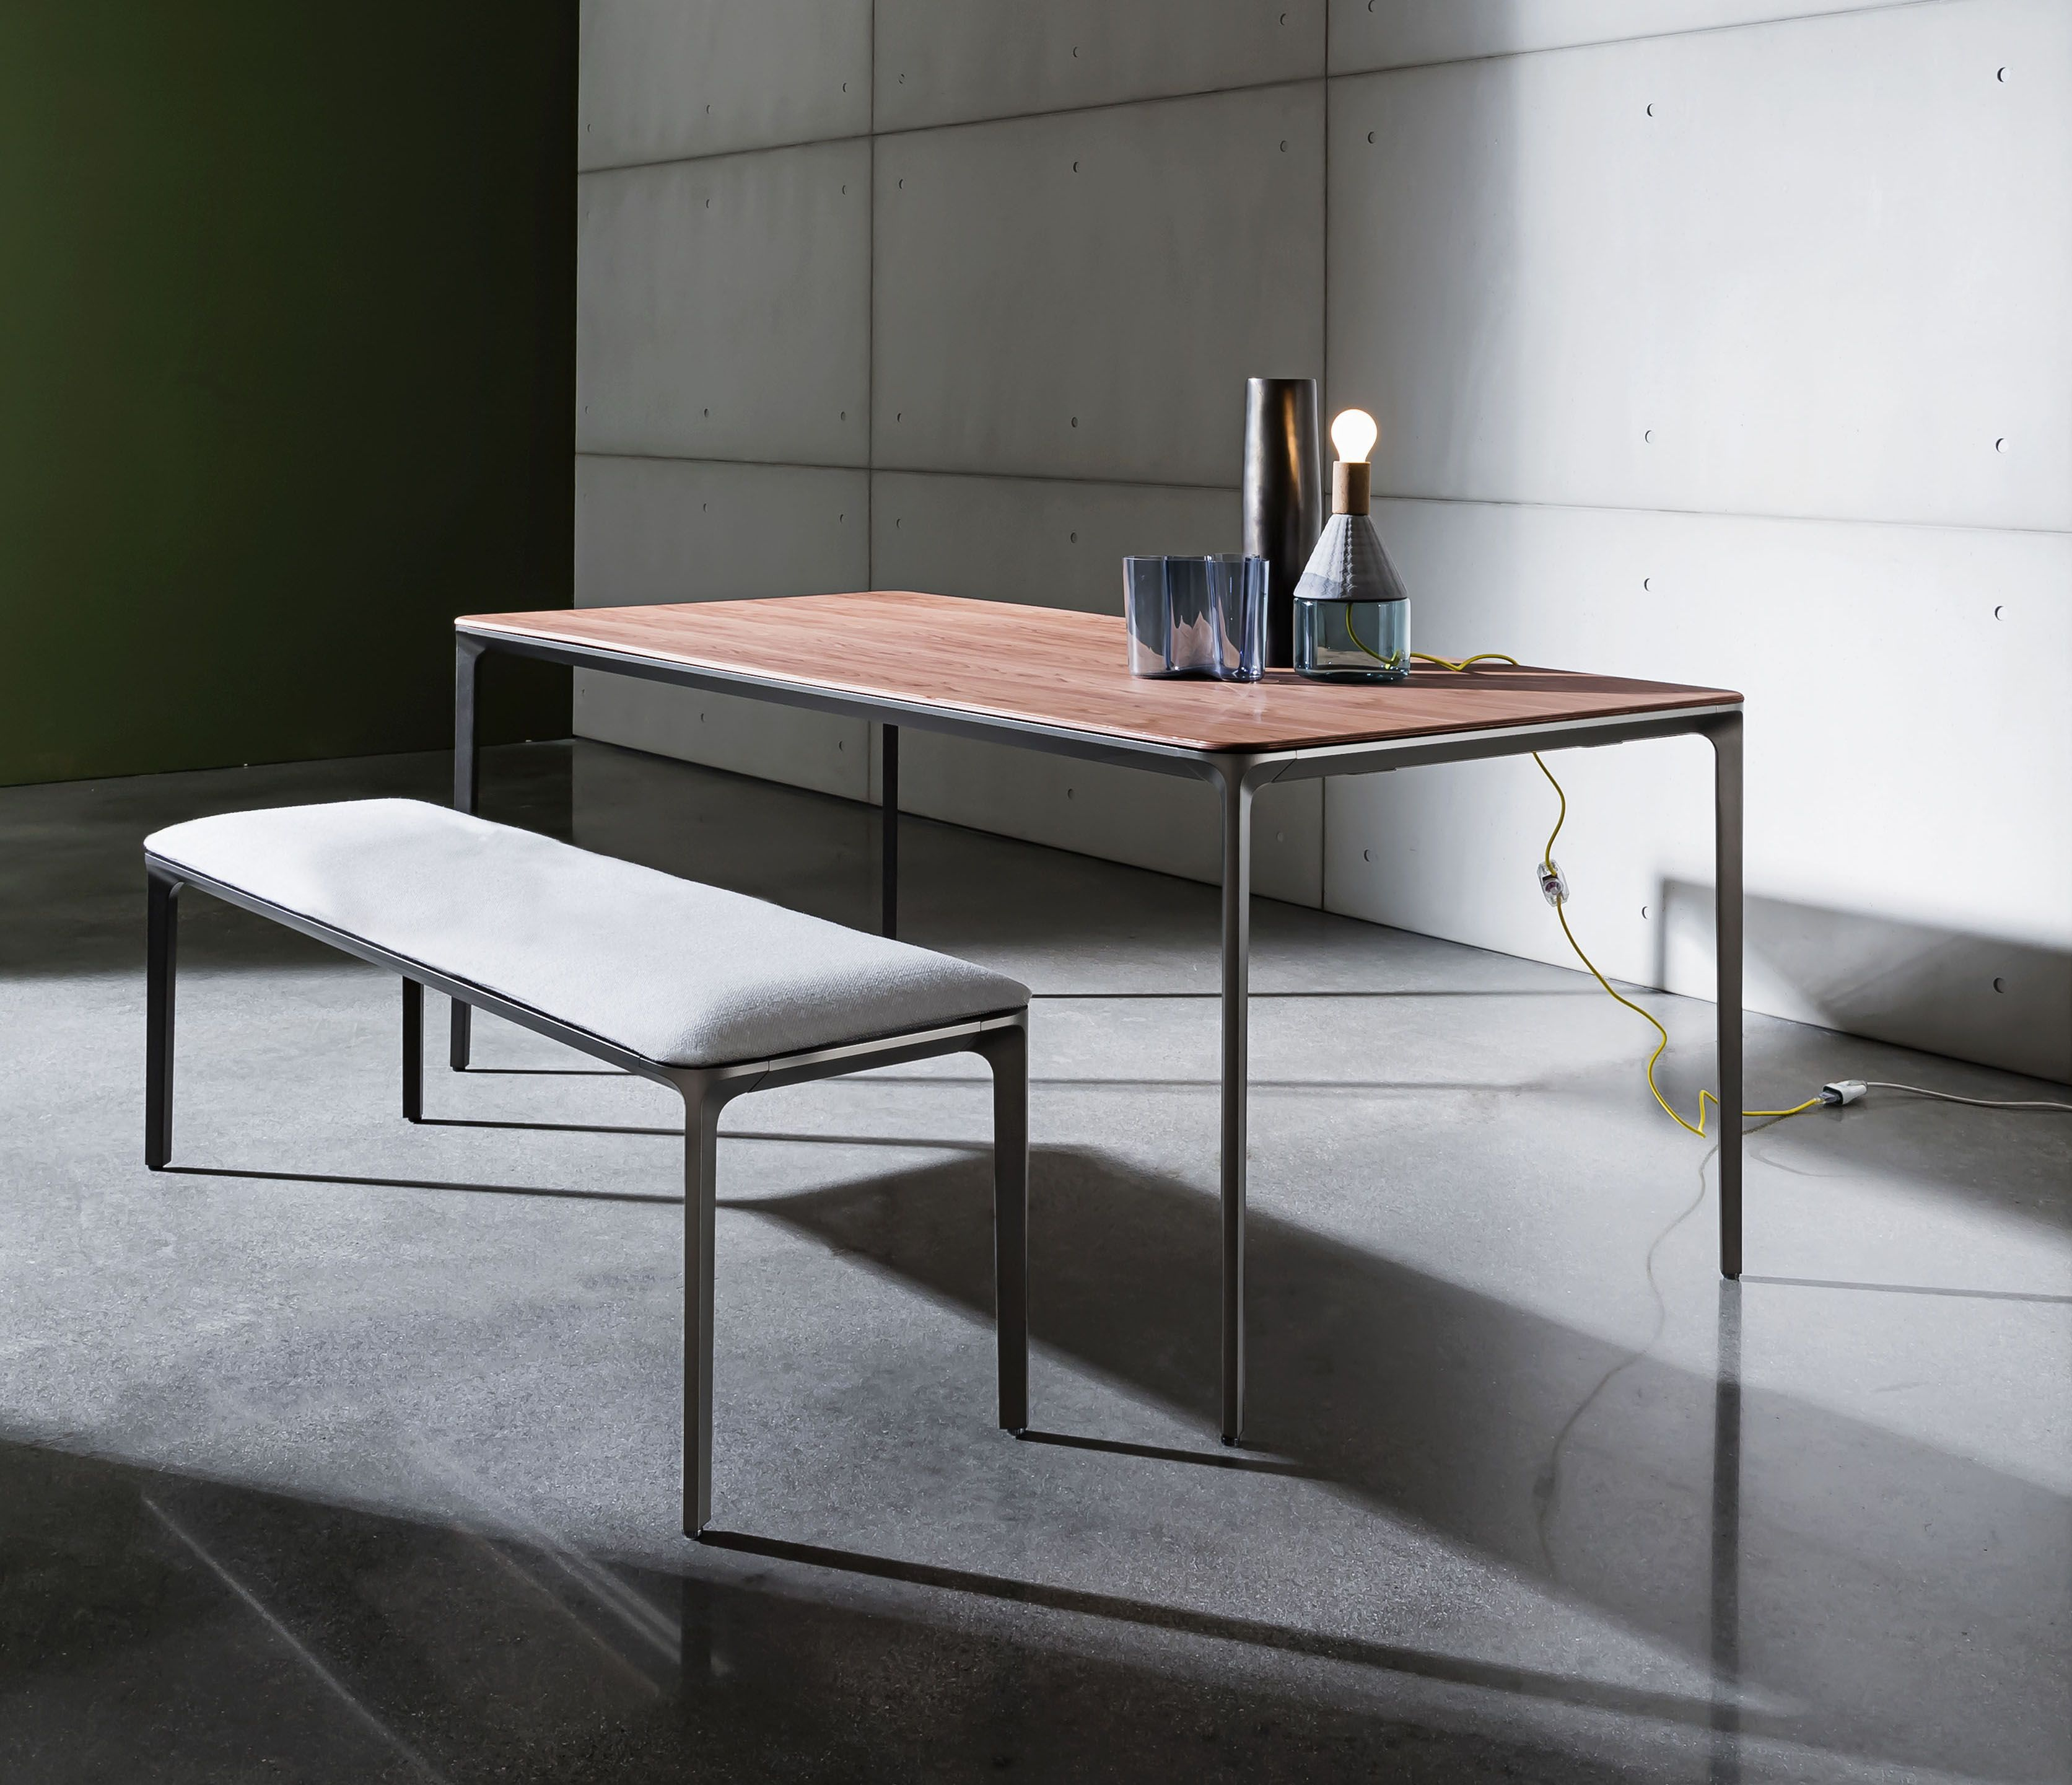 Slim Table Bench Furnish Home And Contract Spaces With